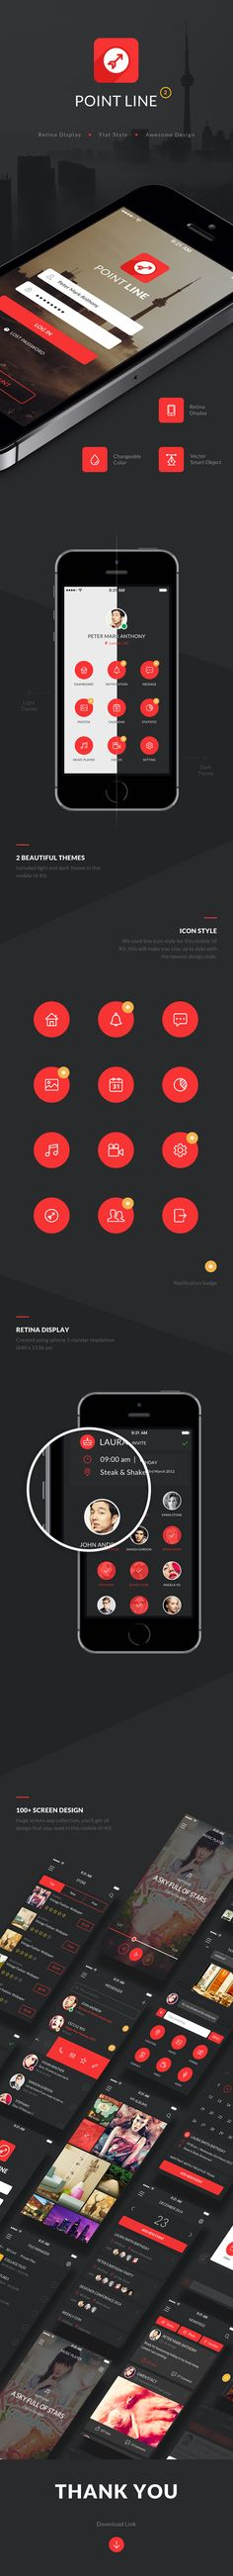 Point Mobile Phone App UI Kit – Flat mobile app design created using Adobe Photoshop CS. You can use this for iPhone or android app project. Inside this mobile ui kit you'll get best app design crafted carefully and pixel perfect PSD's file. Using flat design style, we build this mobile ui kit app well layered, good layer naming and pixel perfect. All icons inside this file using line icon style. Point Mobile Phone App UI Kit includes over 100 flat style PSD screens including menu screens…